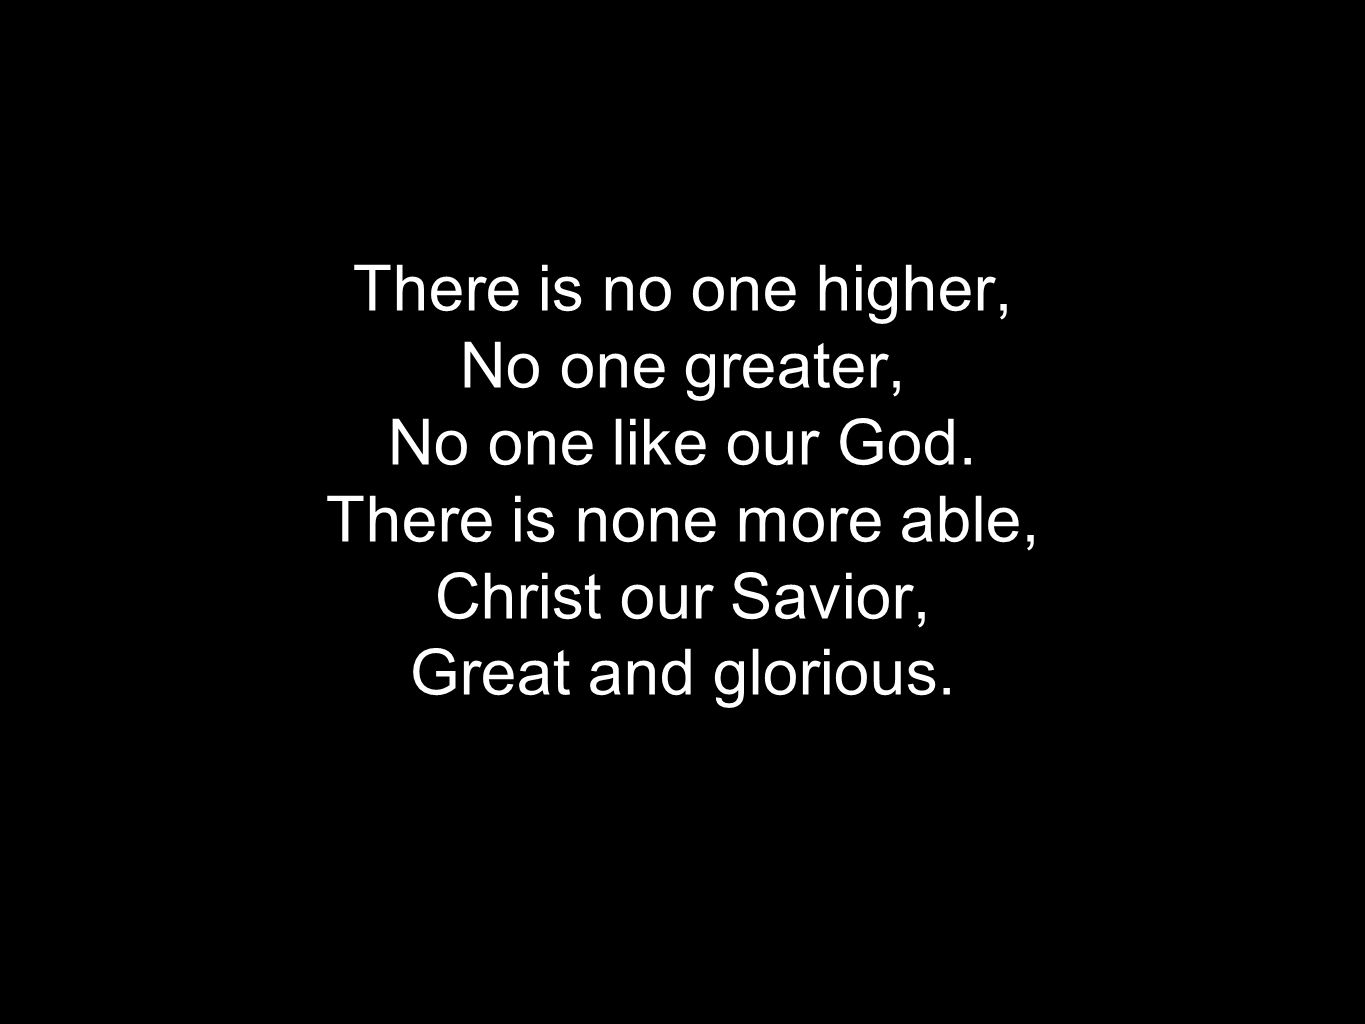 Verse 1 There is no one higher, No one greater, No one like our God.